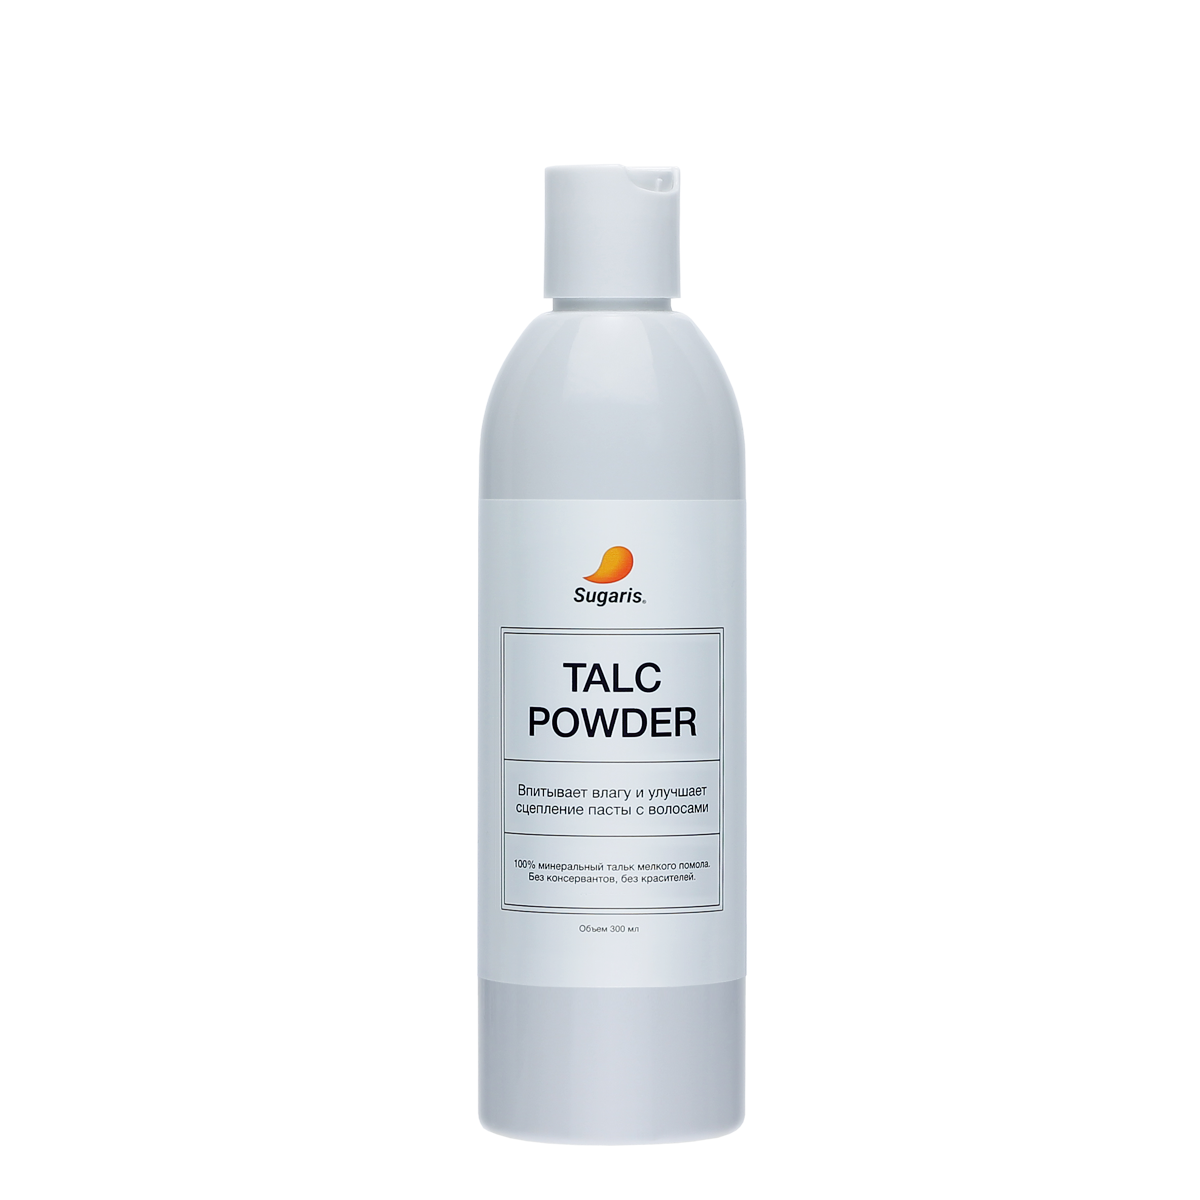 Talc Powder by Sugaris